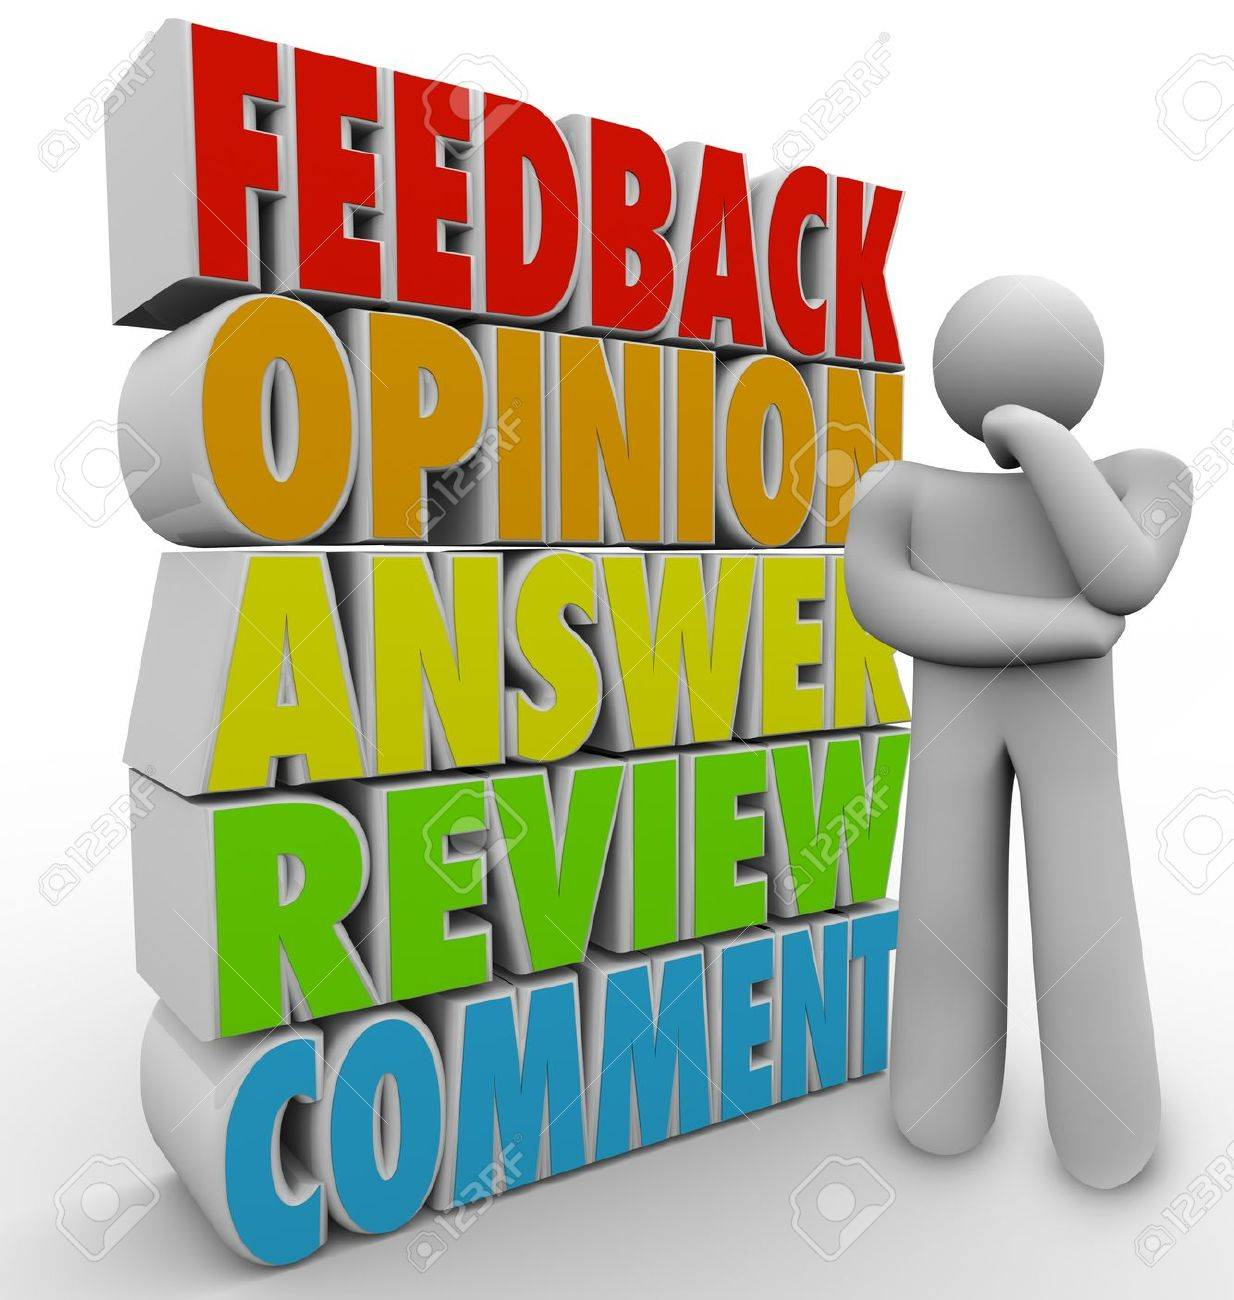 a man customer or other person thinks of his feedback comment a man customer or other person thinks of his feedback comment answer